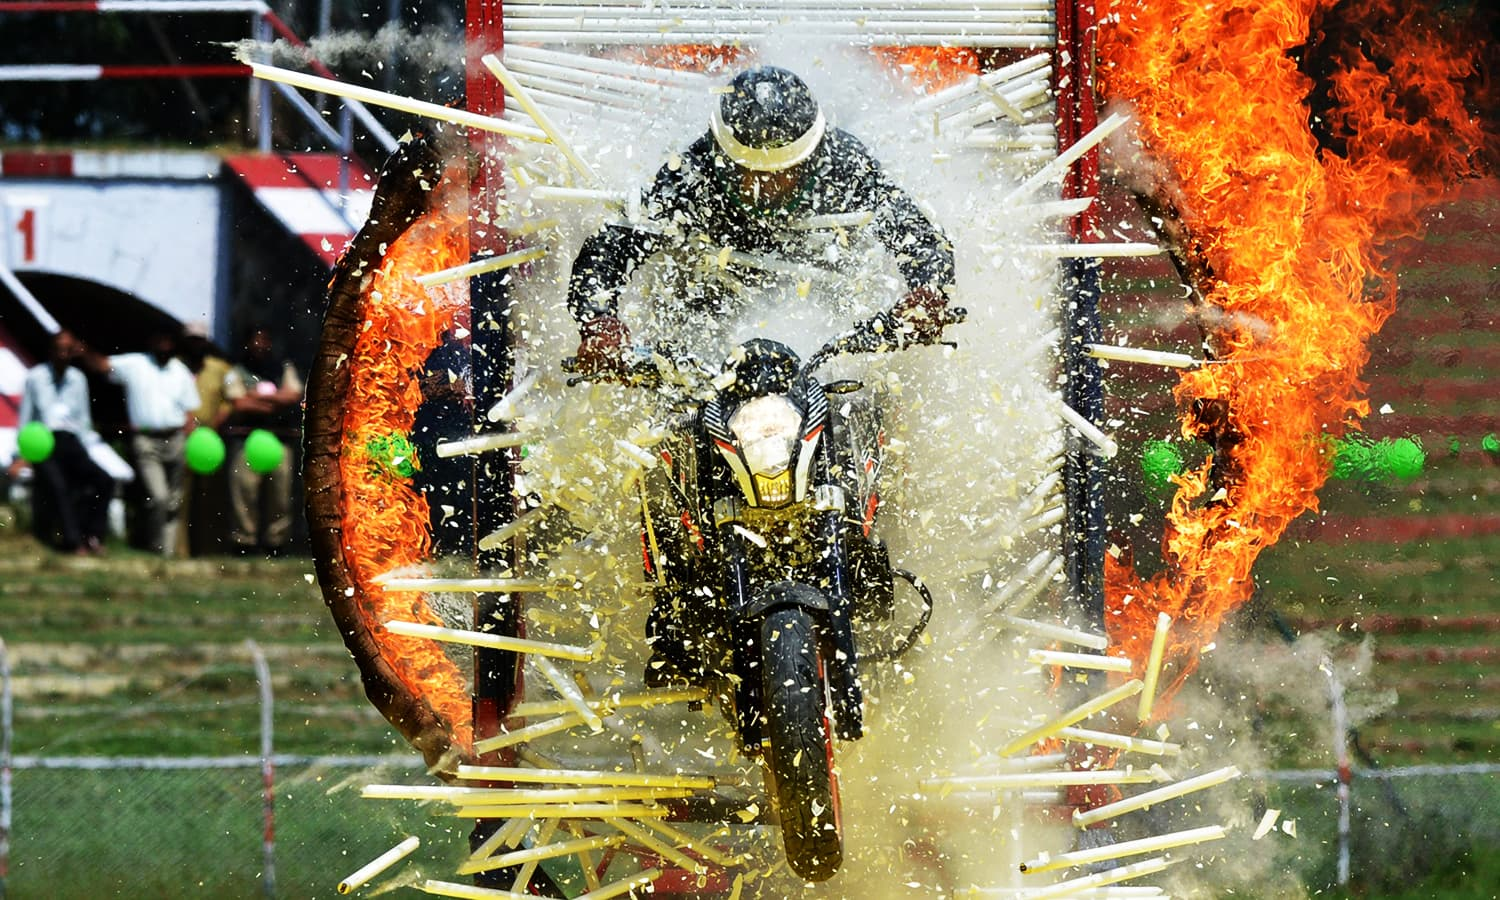 A police motorcyclist rides through a burning hoop and a wall of glass tubes during an Independence Day event at The Bakshi Stadium in Srinagar on August 15, 2016. ─ AFP